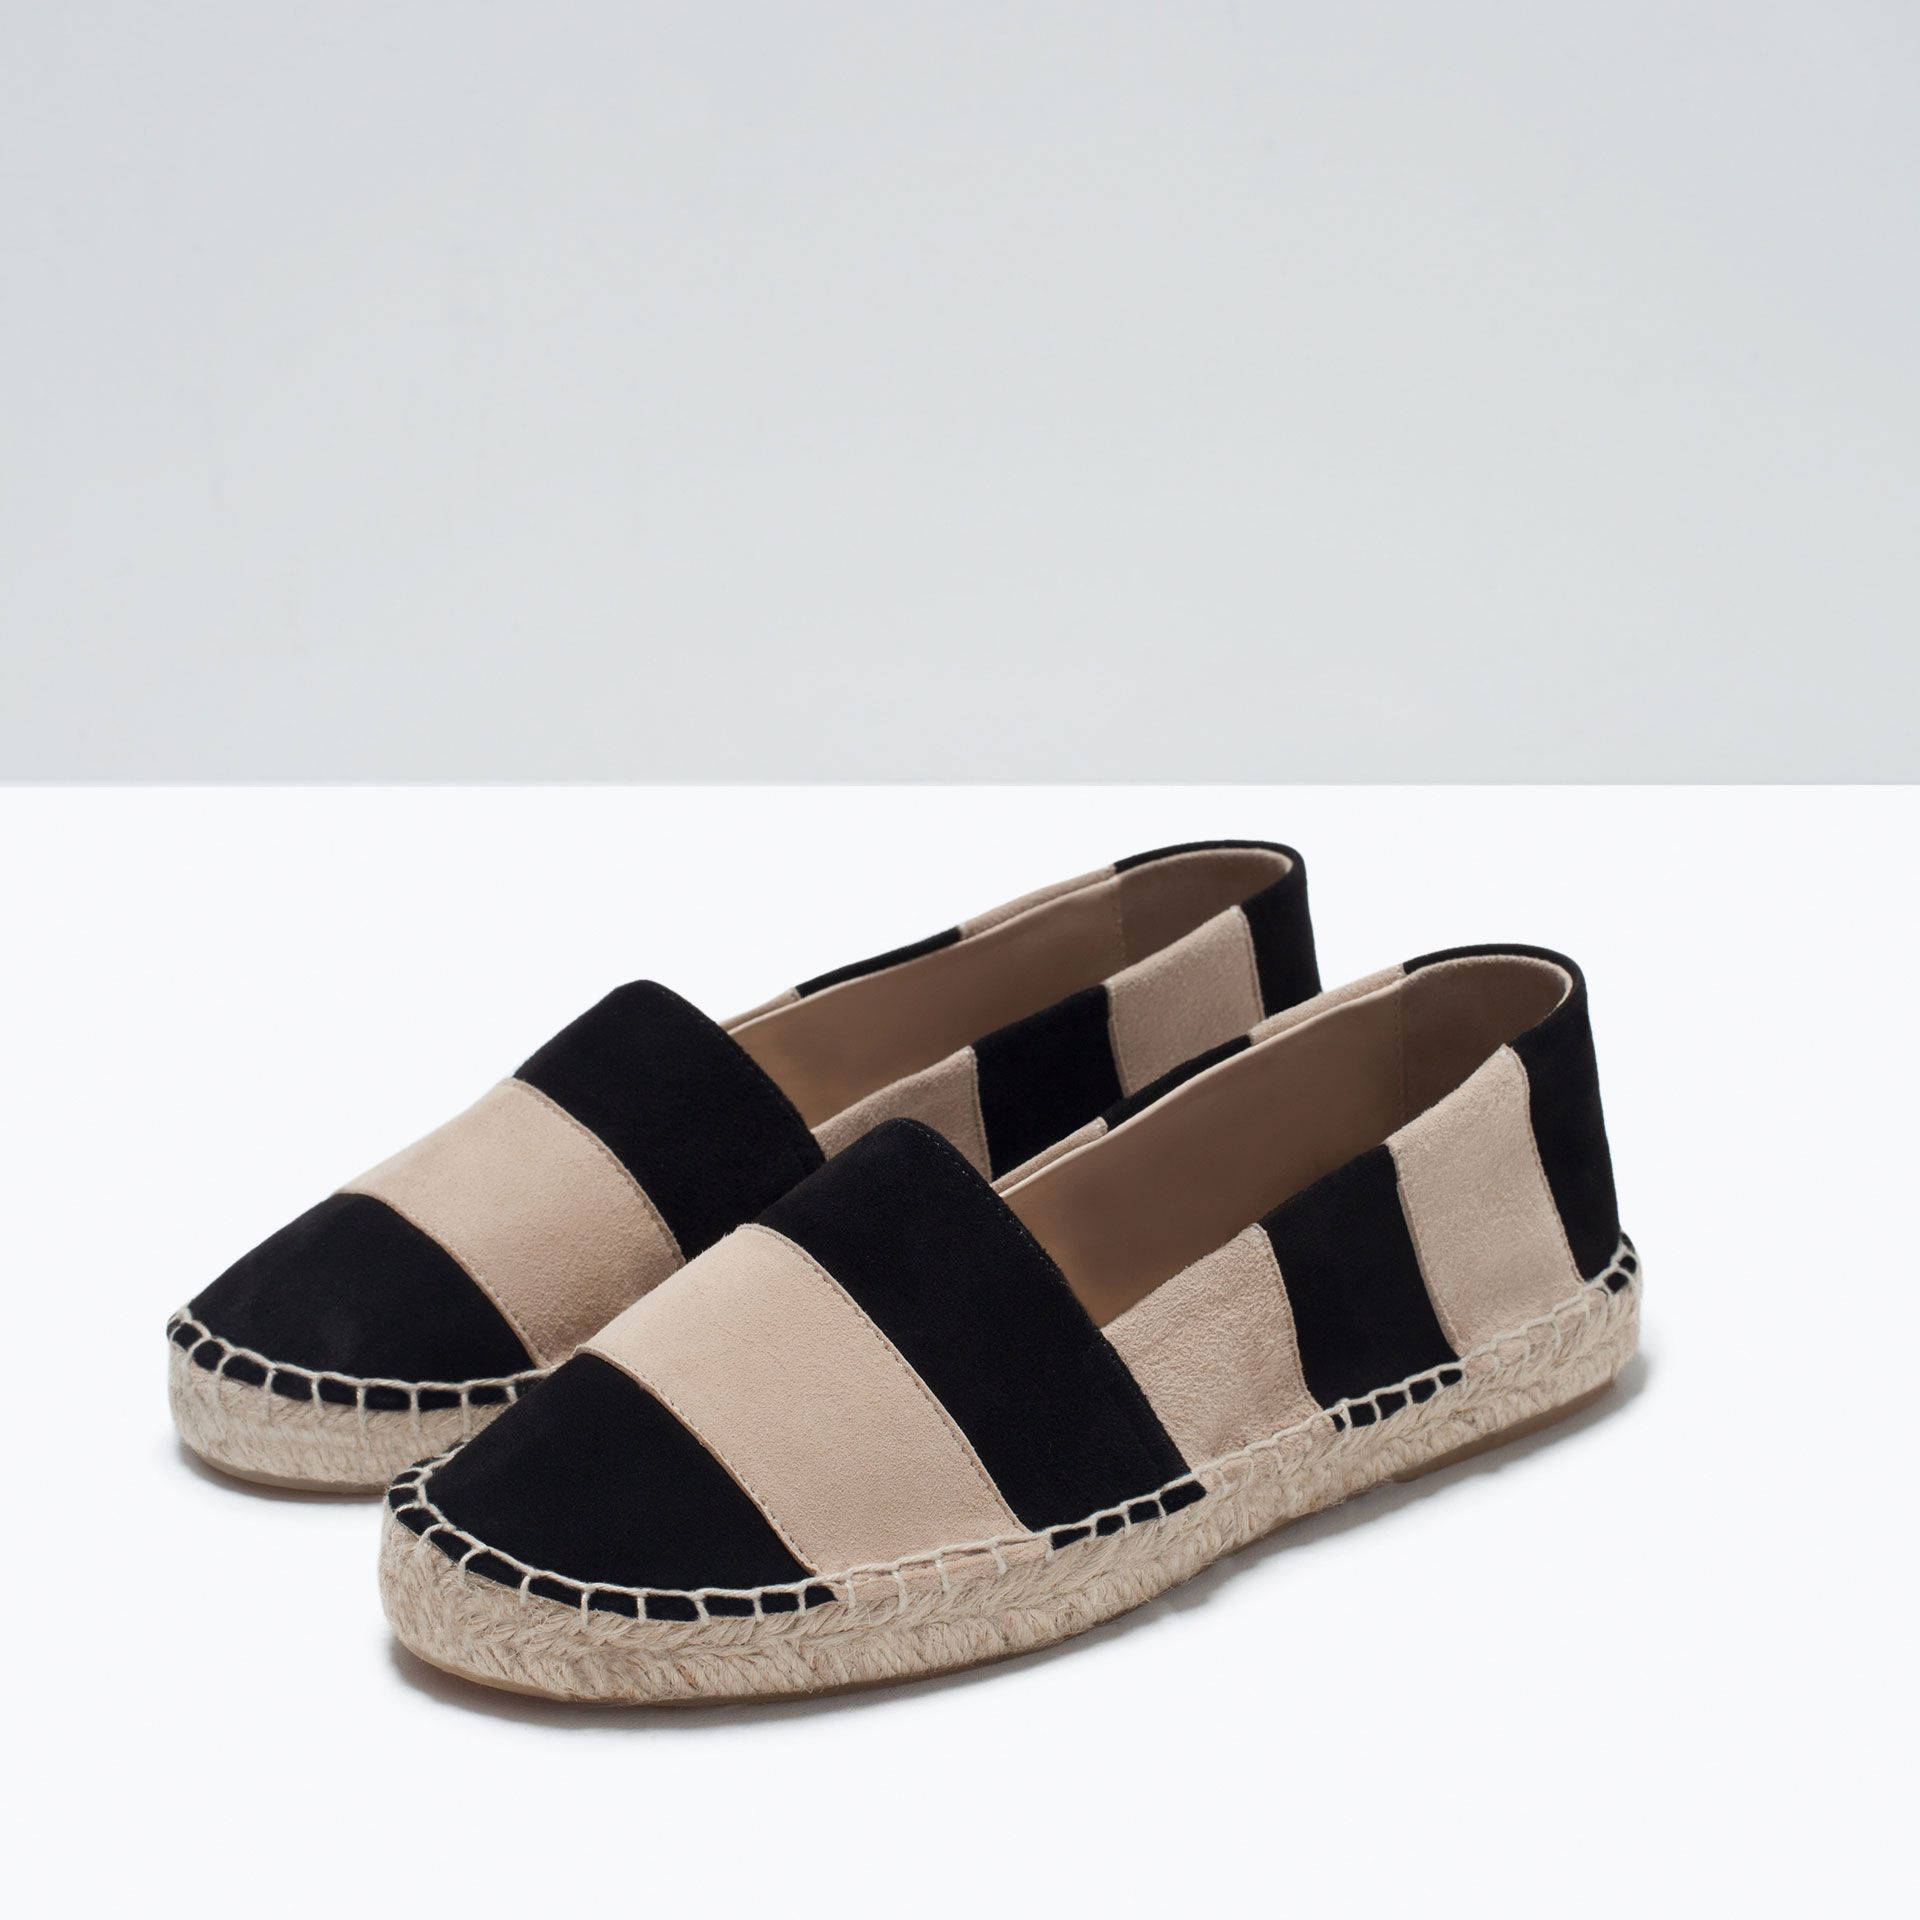 STRIPED LEATHER ESPADRILLES - Shoes - Woman - SHOES & BAGS | ZARA United  Kingdom